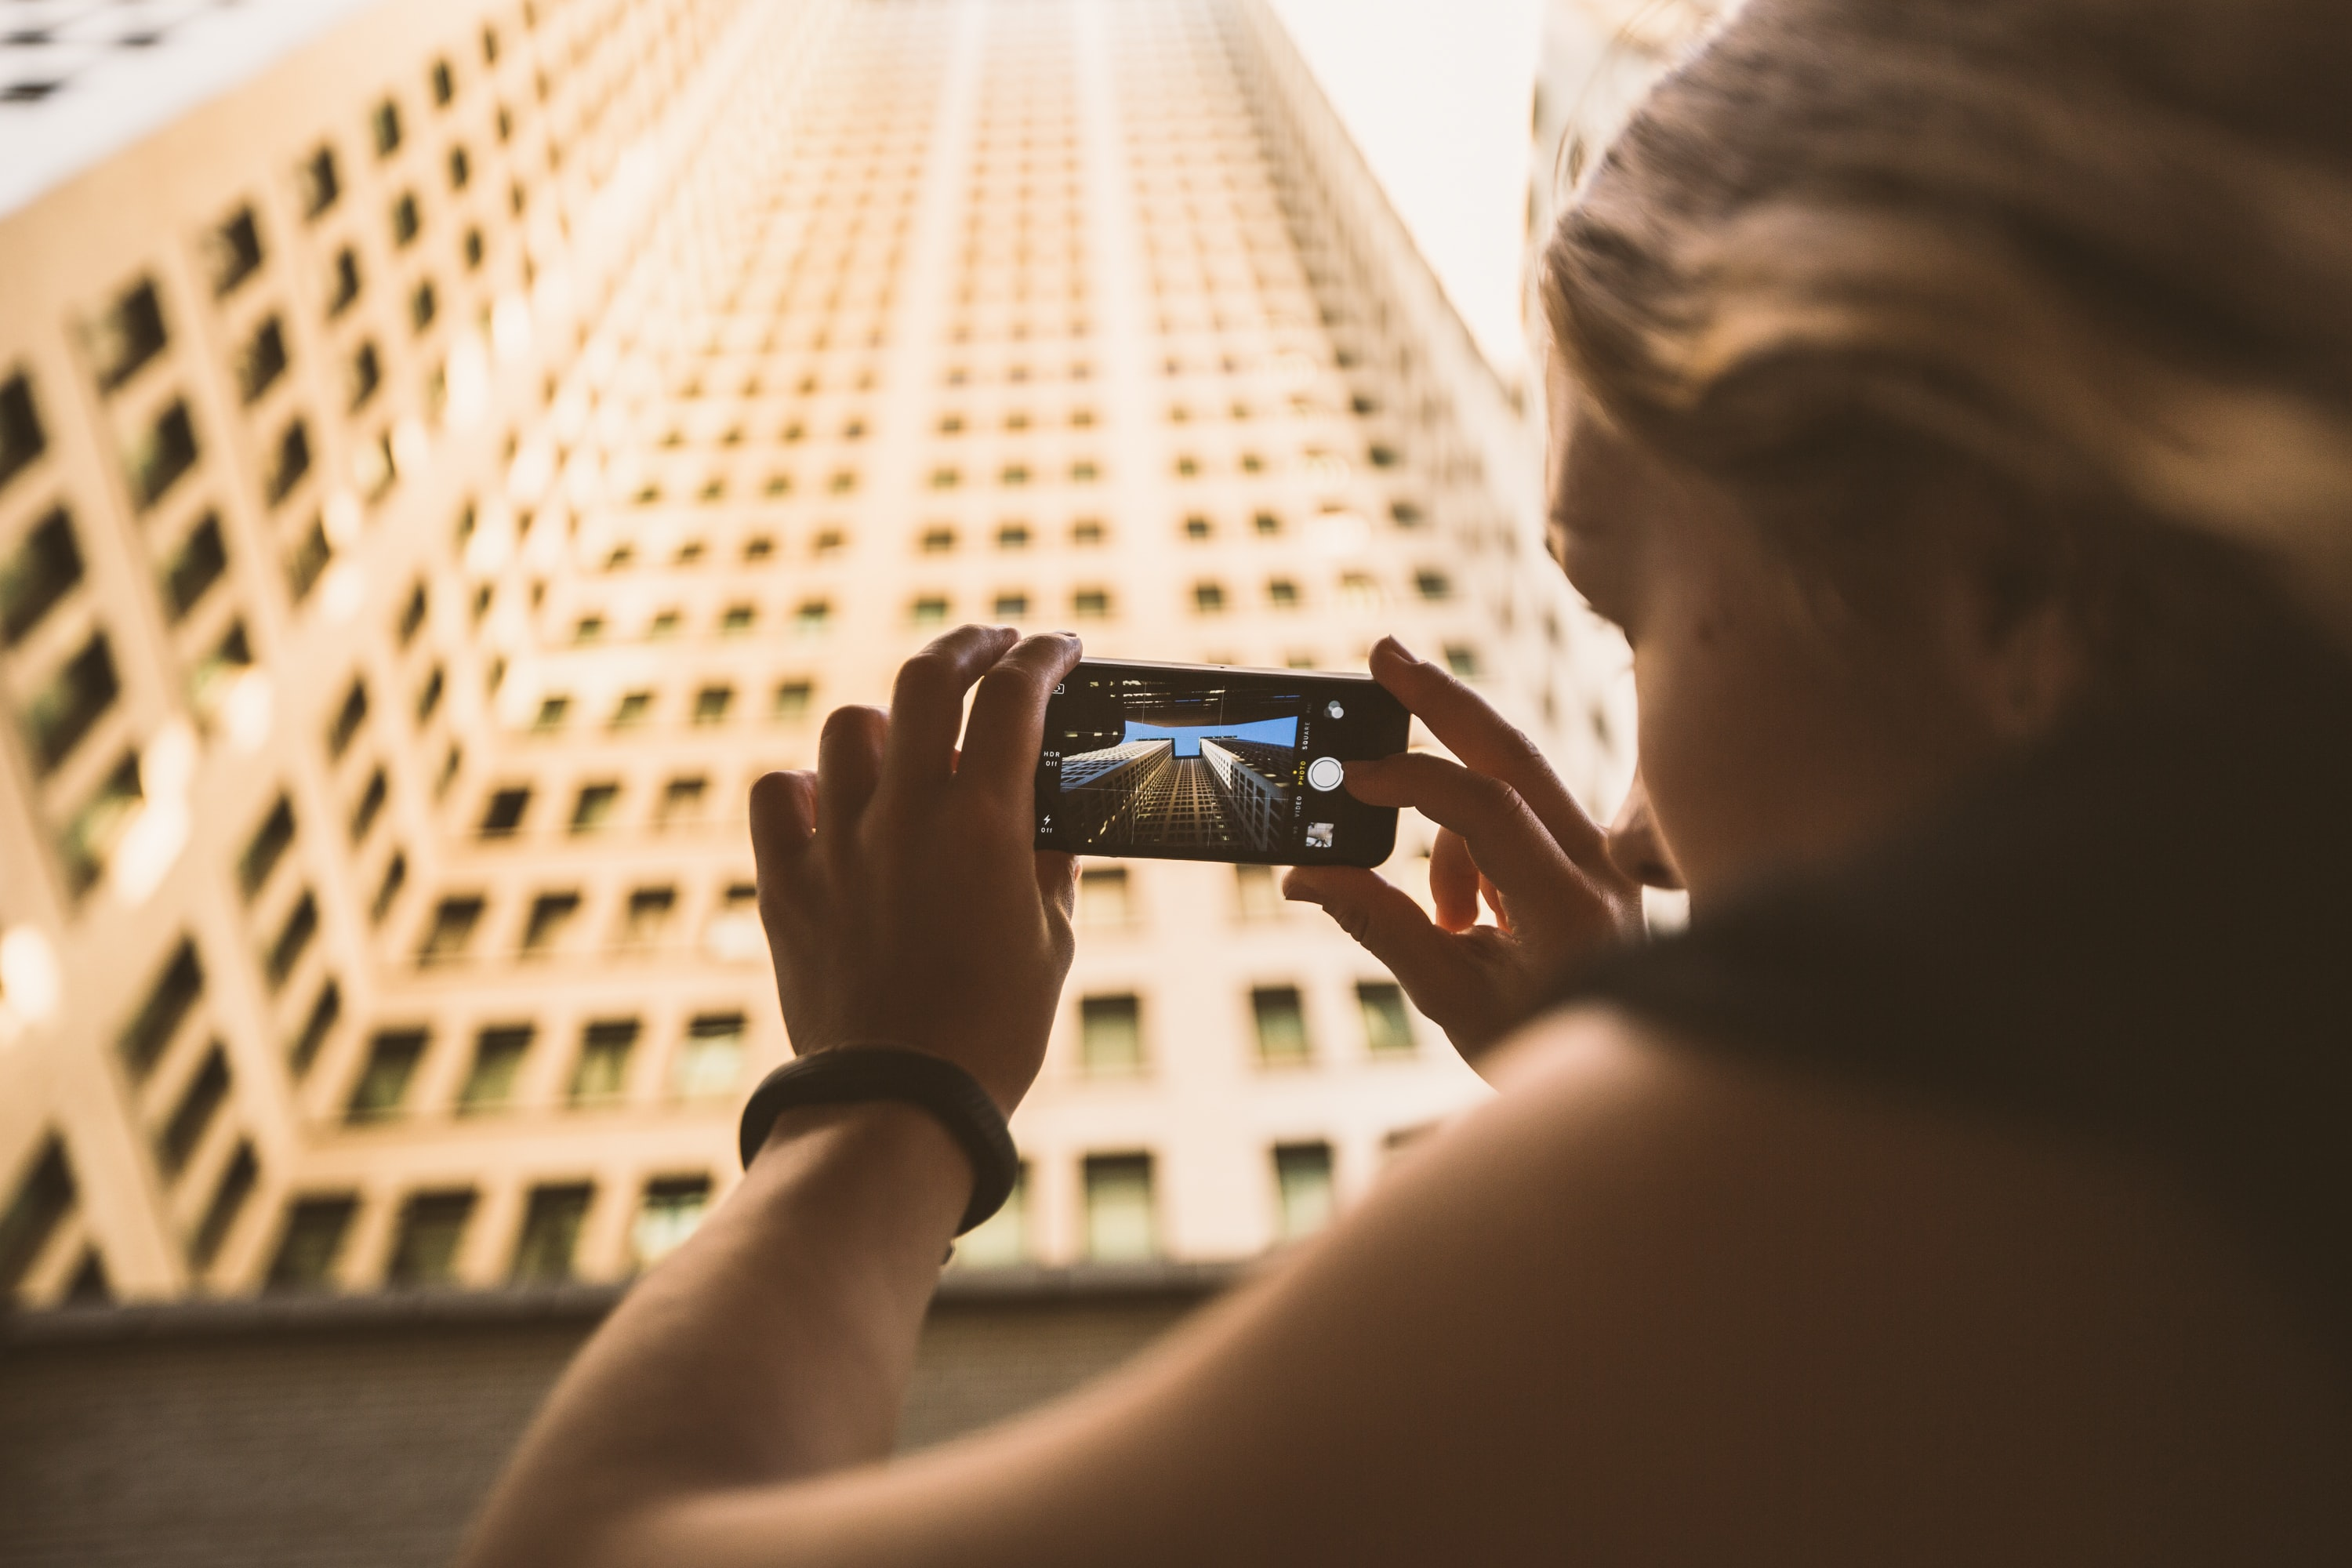 A photo of a woman taking a photo on an iPhone cellphone of a building